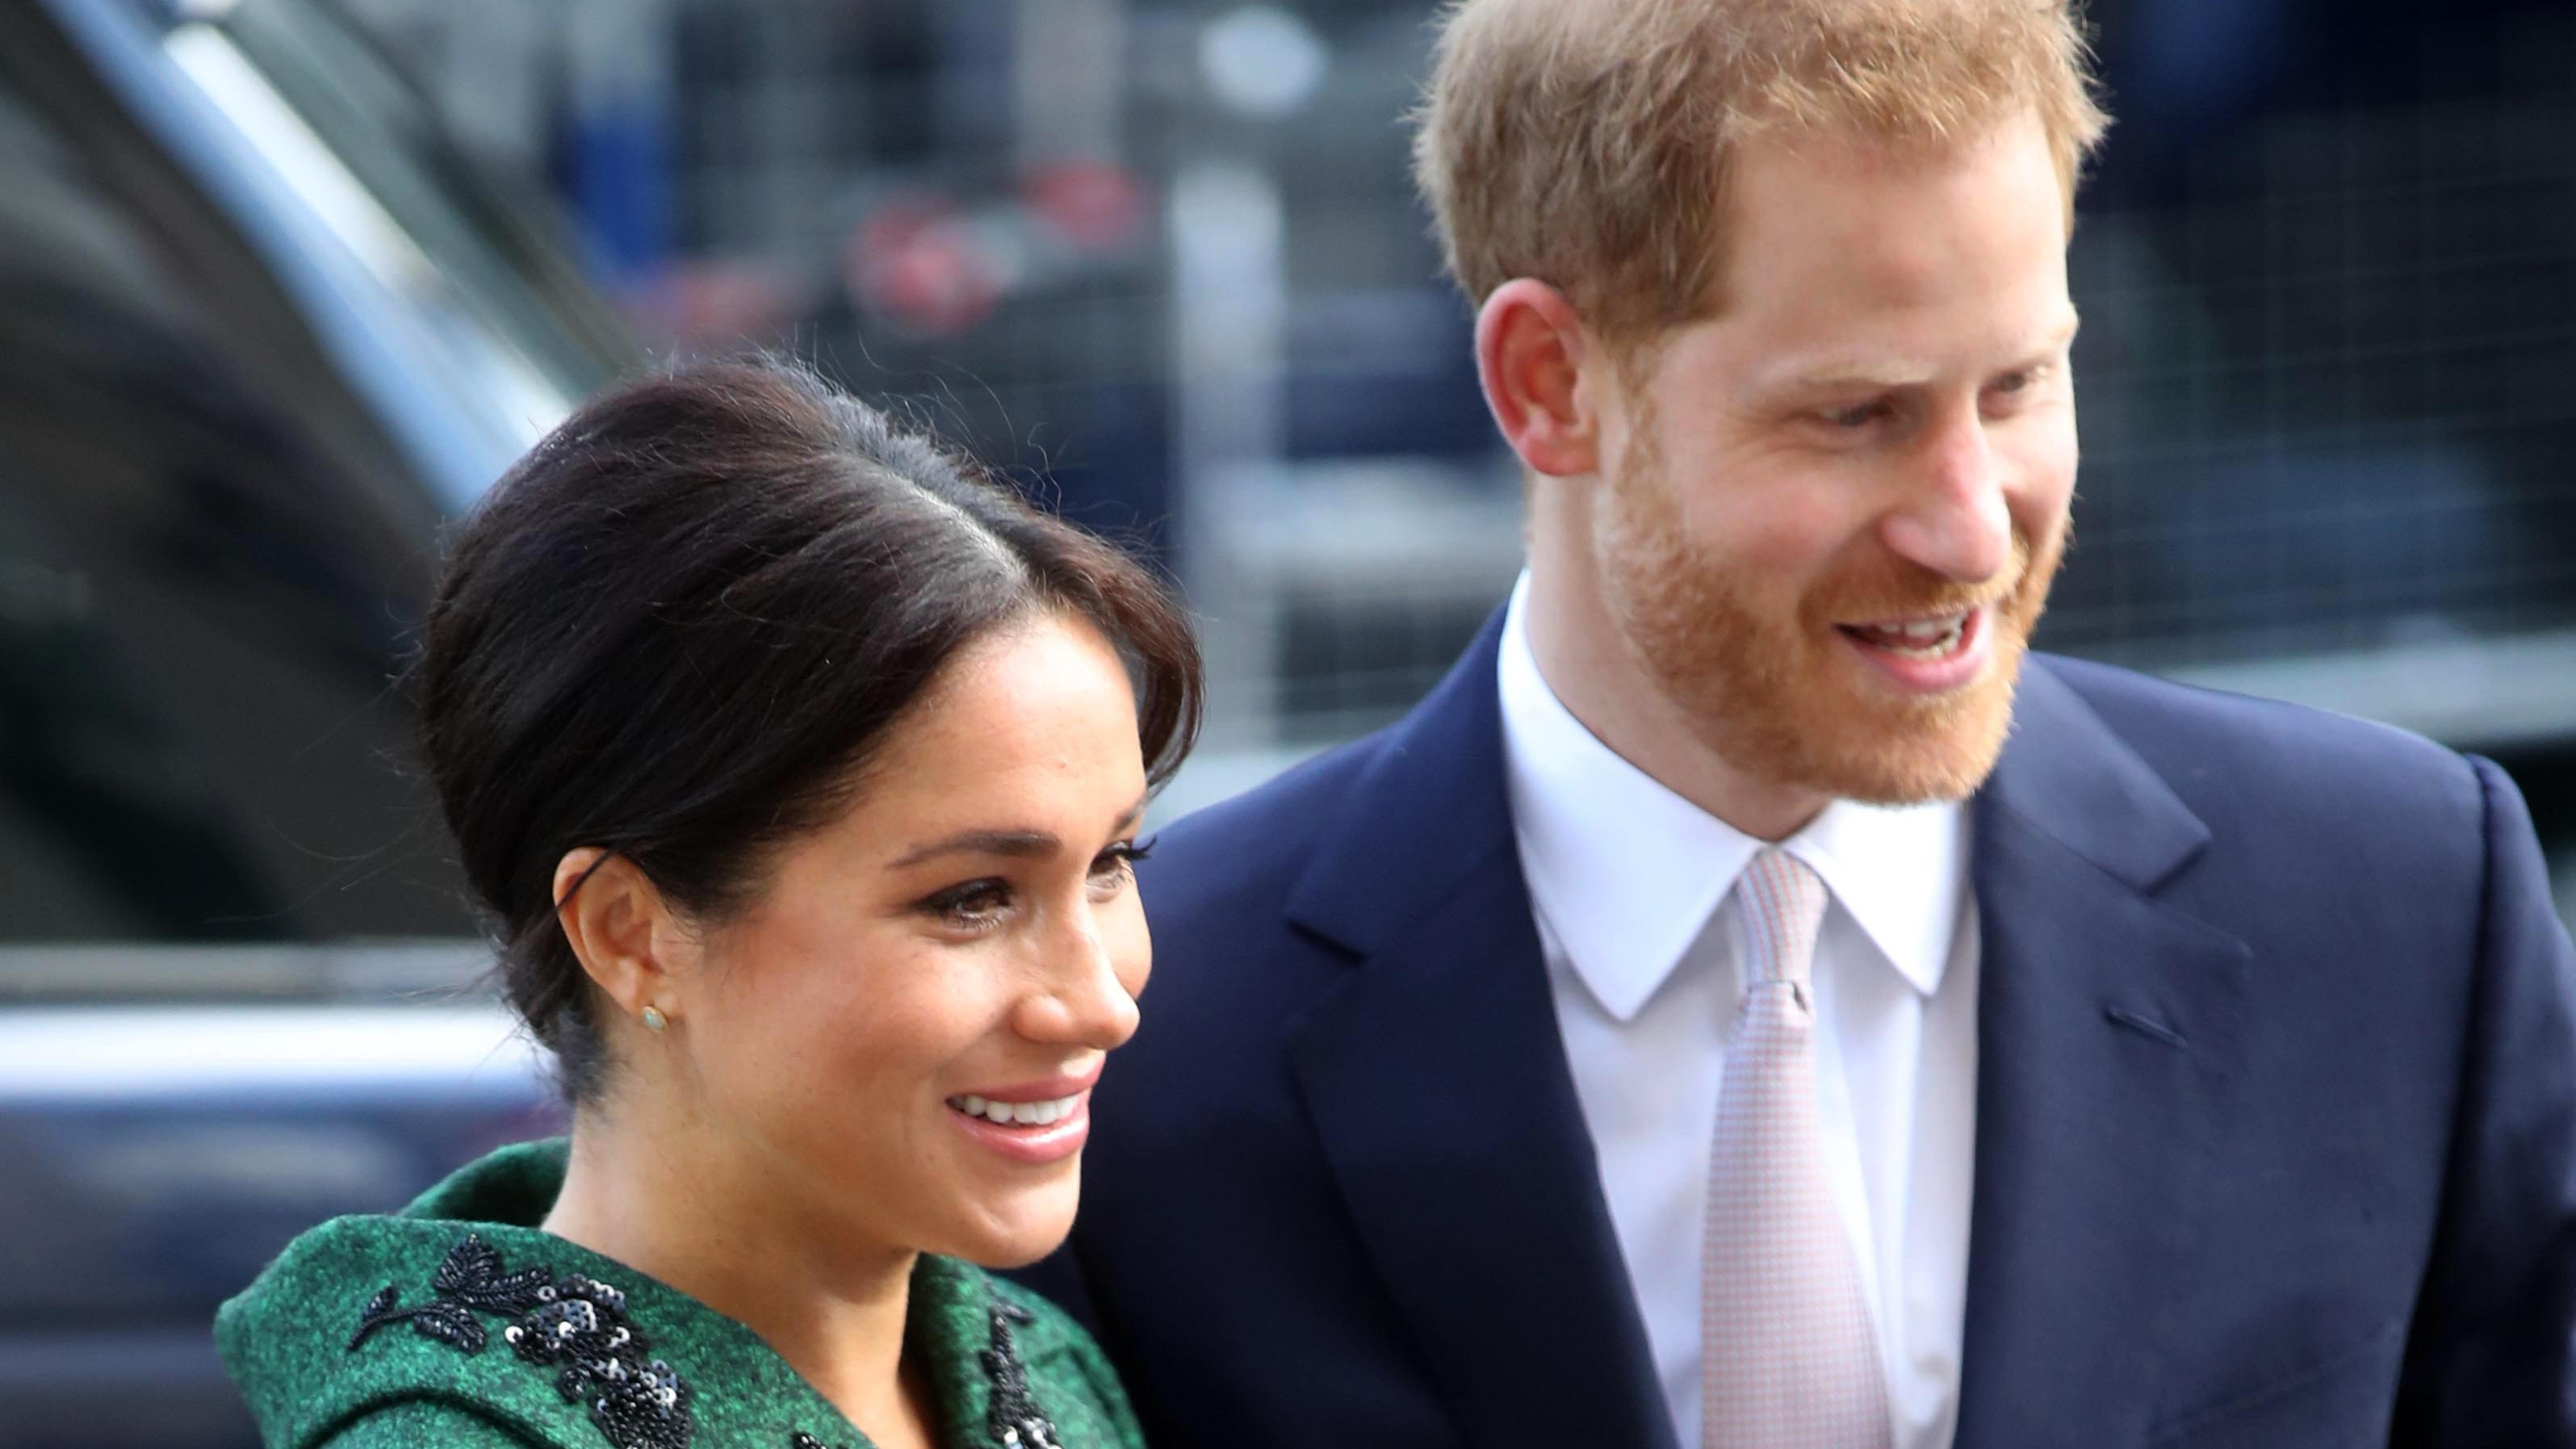 """Oprah Believes Meghan Markle Is Being Treated Unfairly In The Press: """"She Just Has A Wonderful, Warm, Giving, Loving Heart"""""""